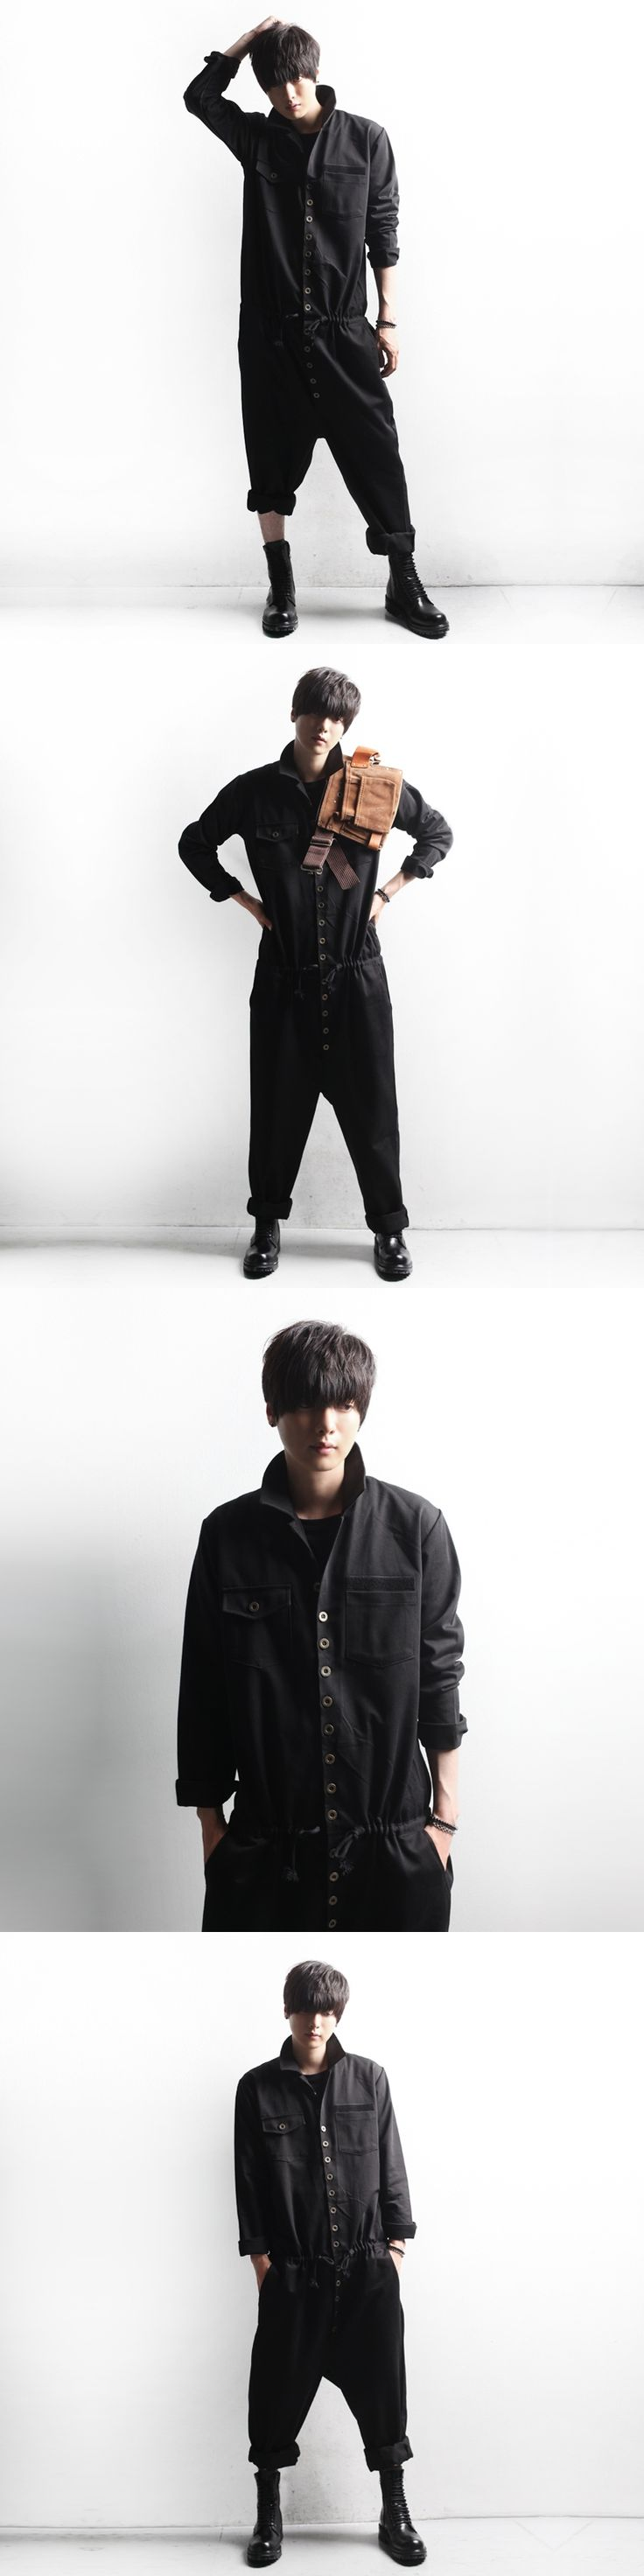 Can be customized Qiu dong han edition men jumpsuits overalls runway looks The new easing conjoined straps trousers fashion